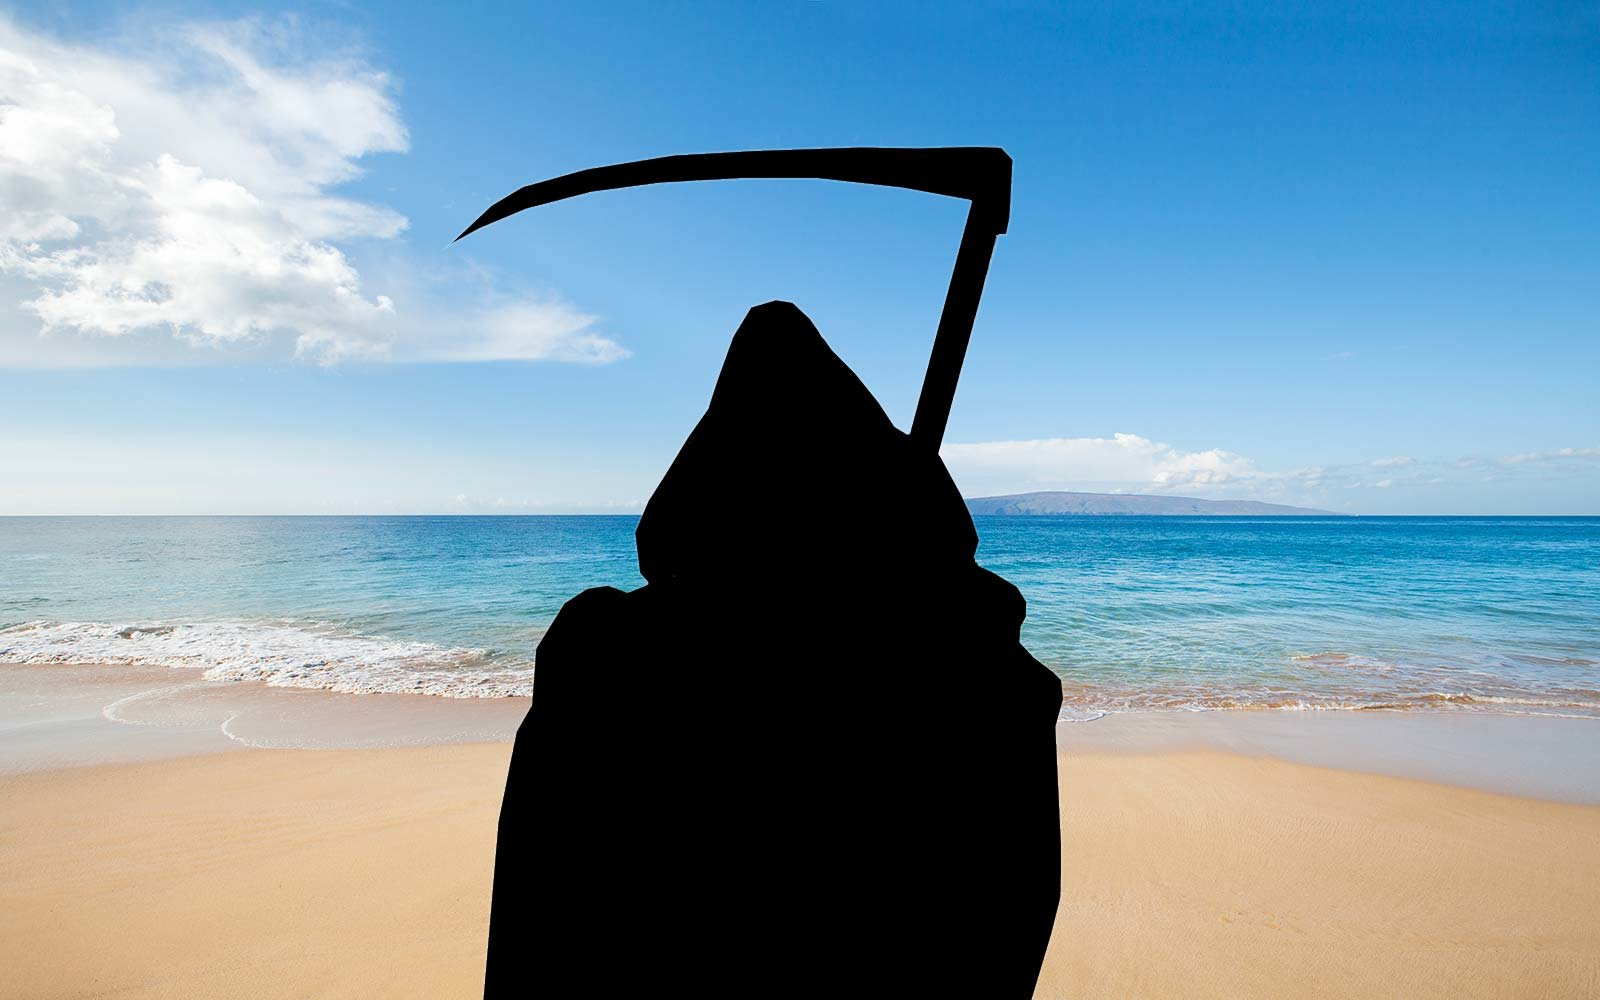 The swim reaper makes everyone 39 s basic beach instagrams look ghoulish travel leisure for Travel swimsuit